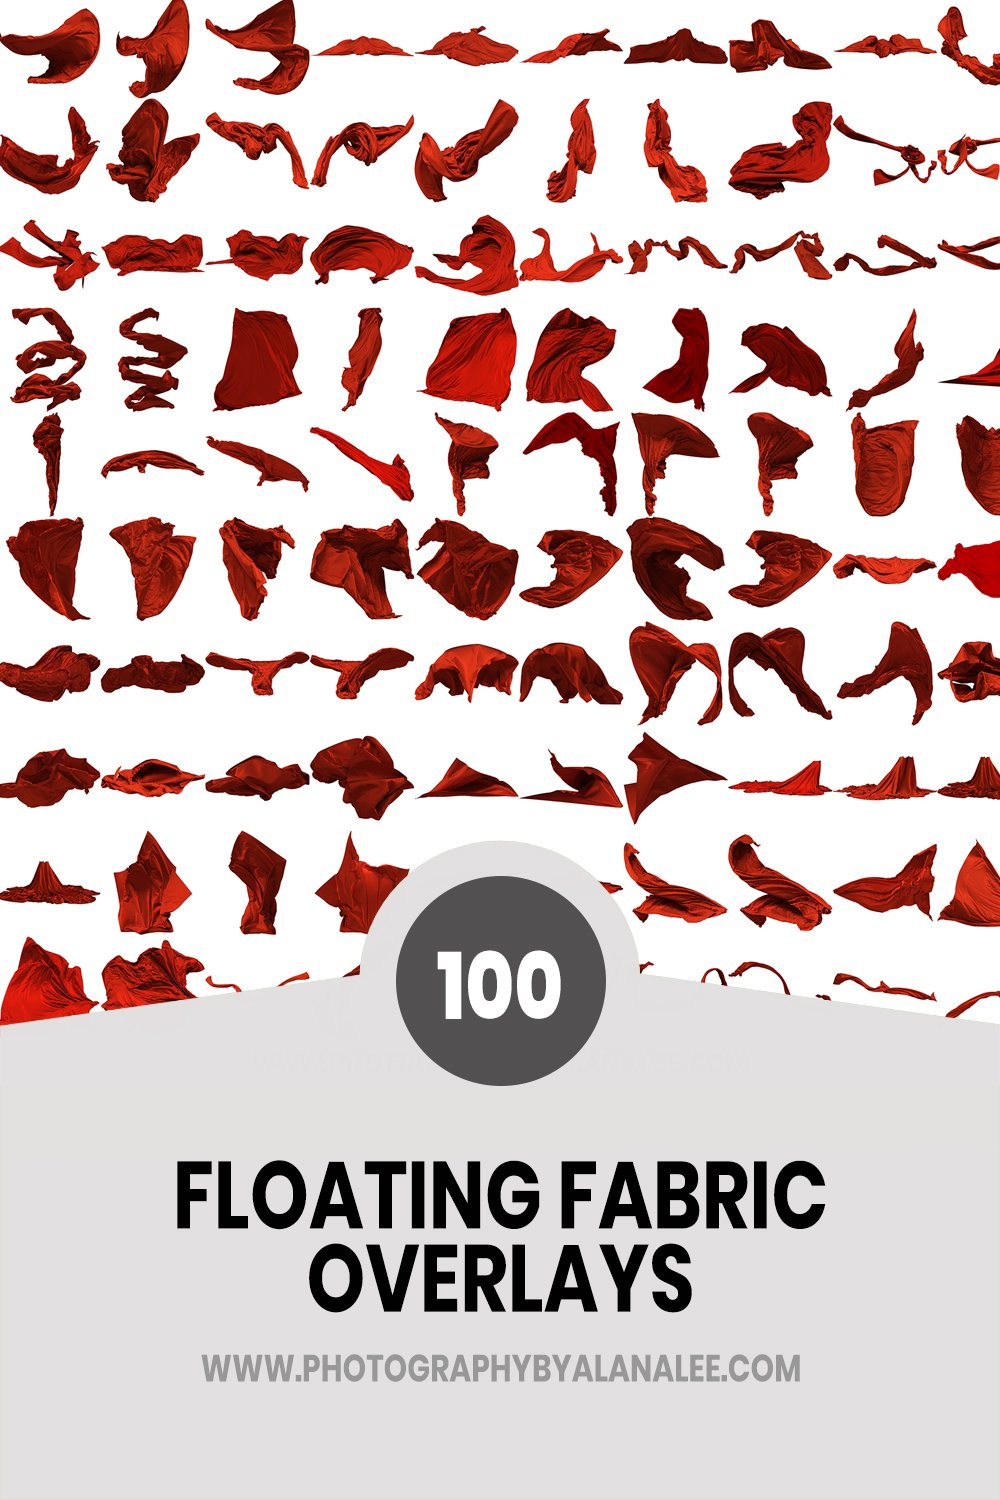 a collection of 100 digital flying fabric overlays for photoshop editing